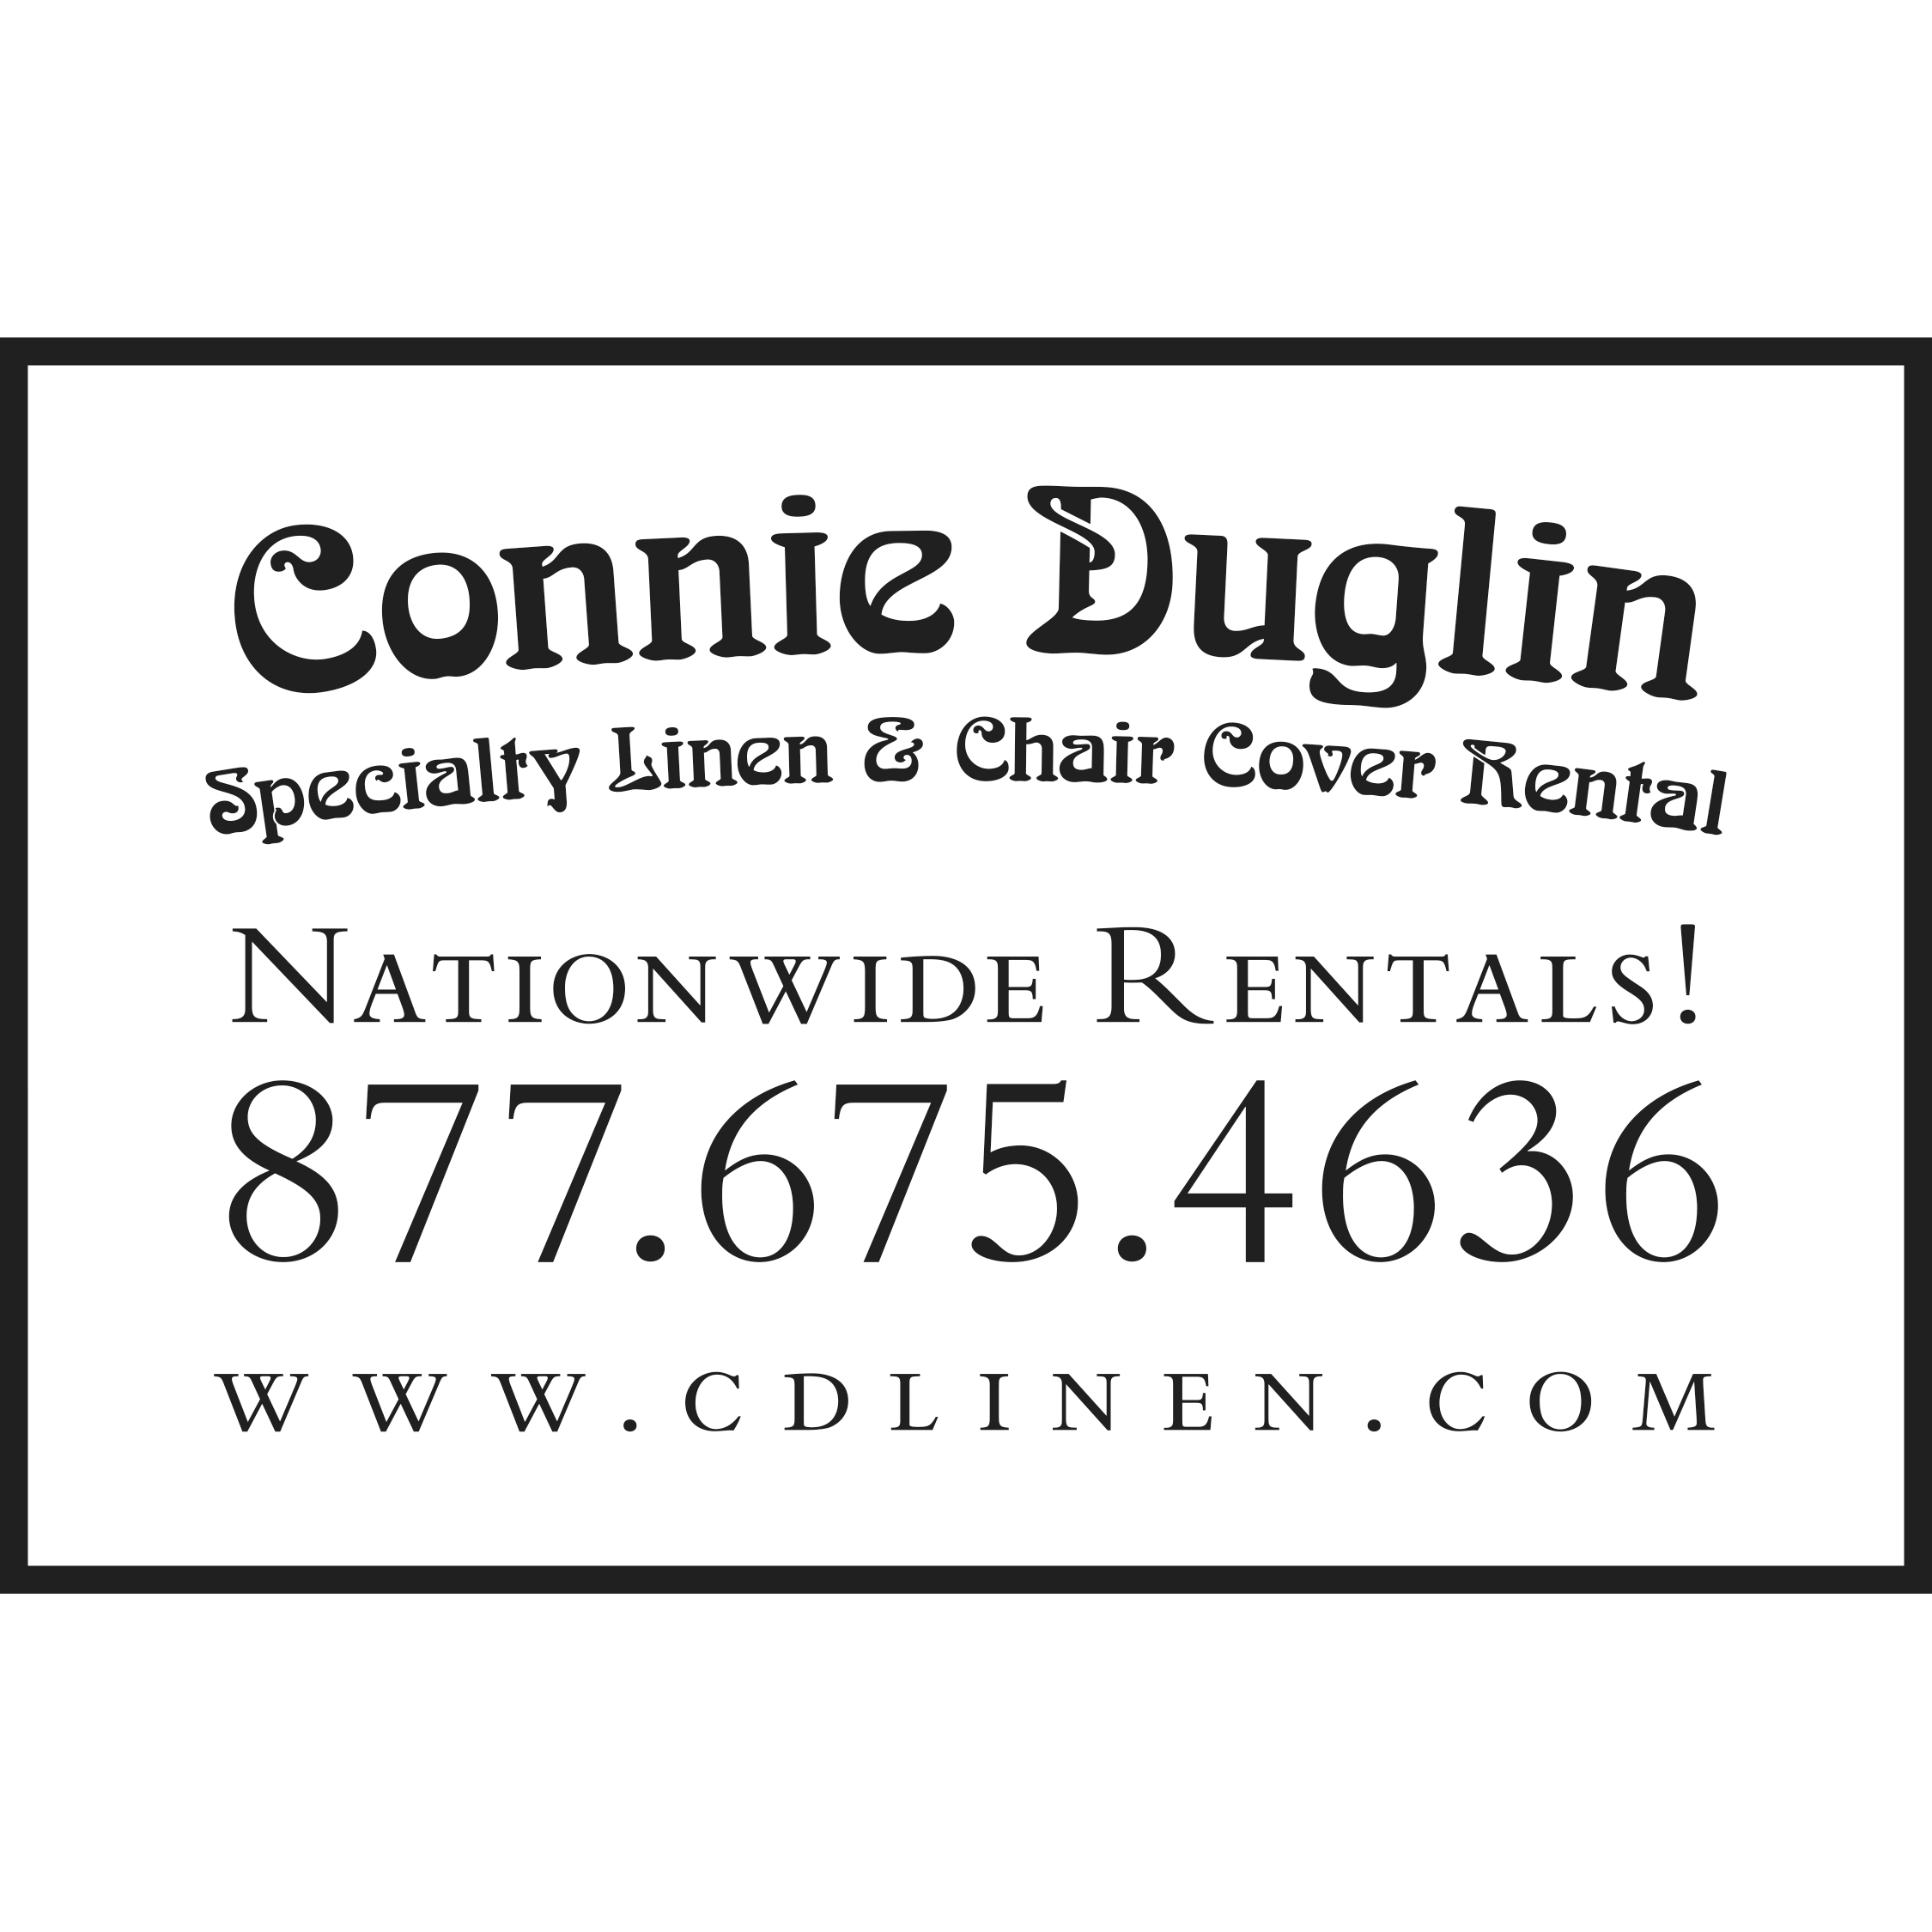 Connie Duglin Linen